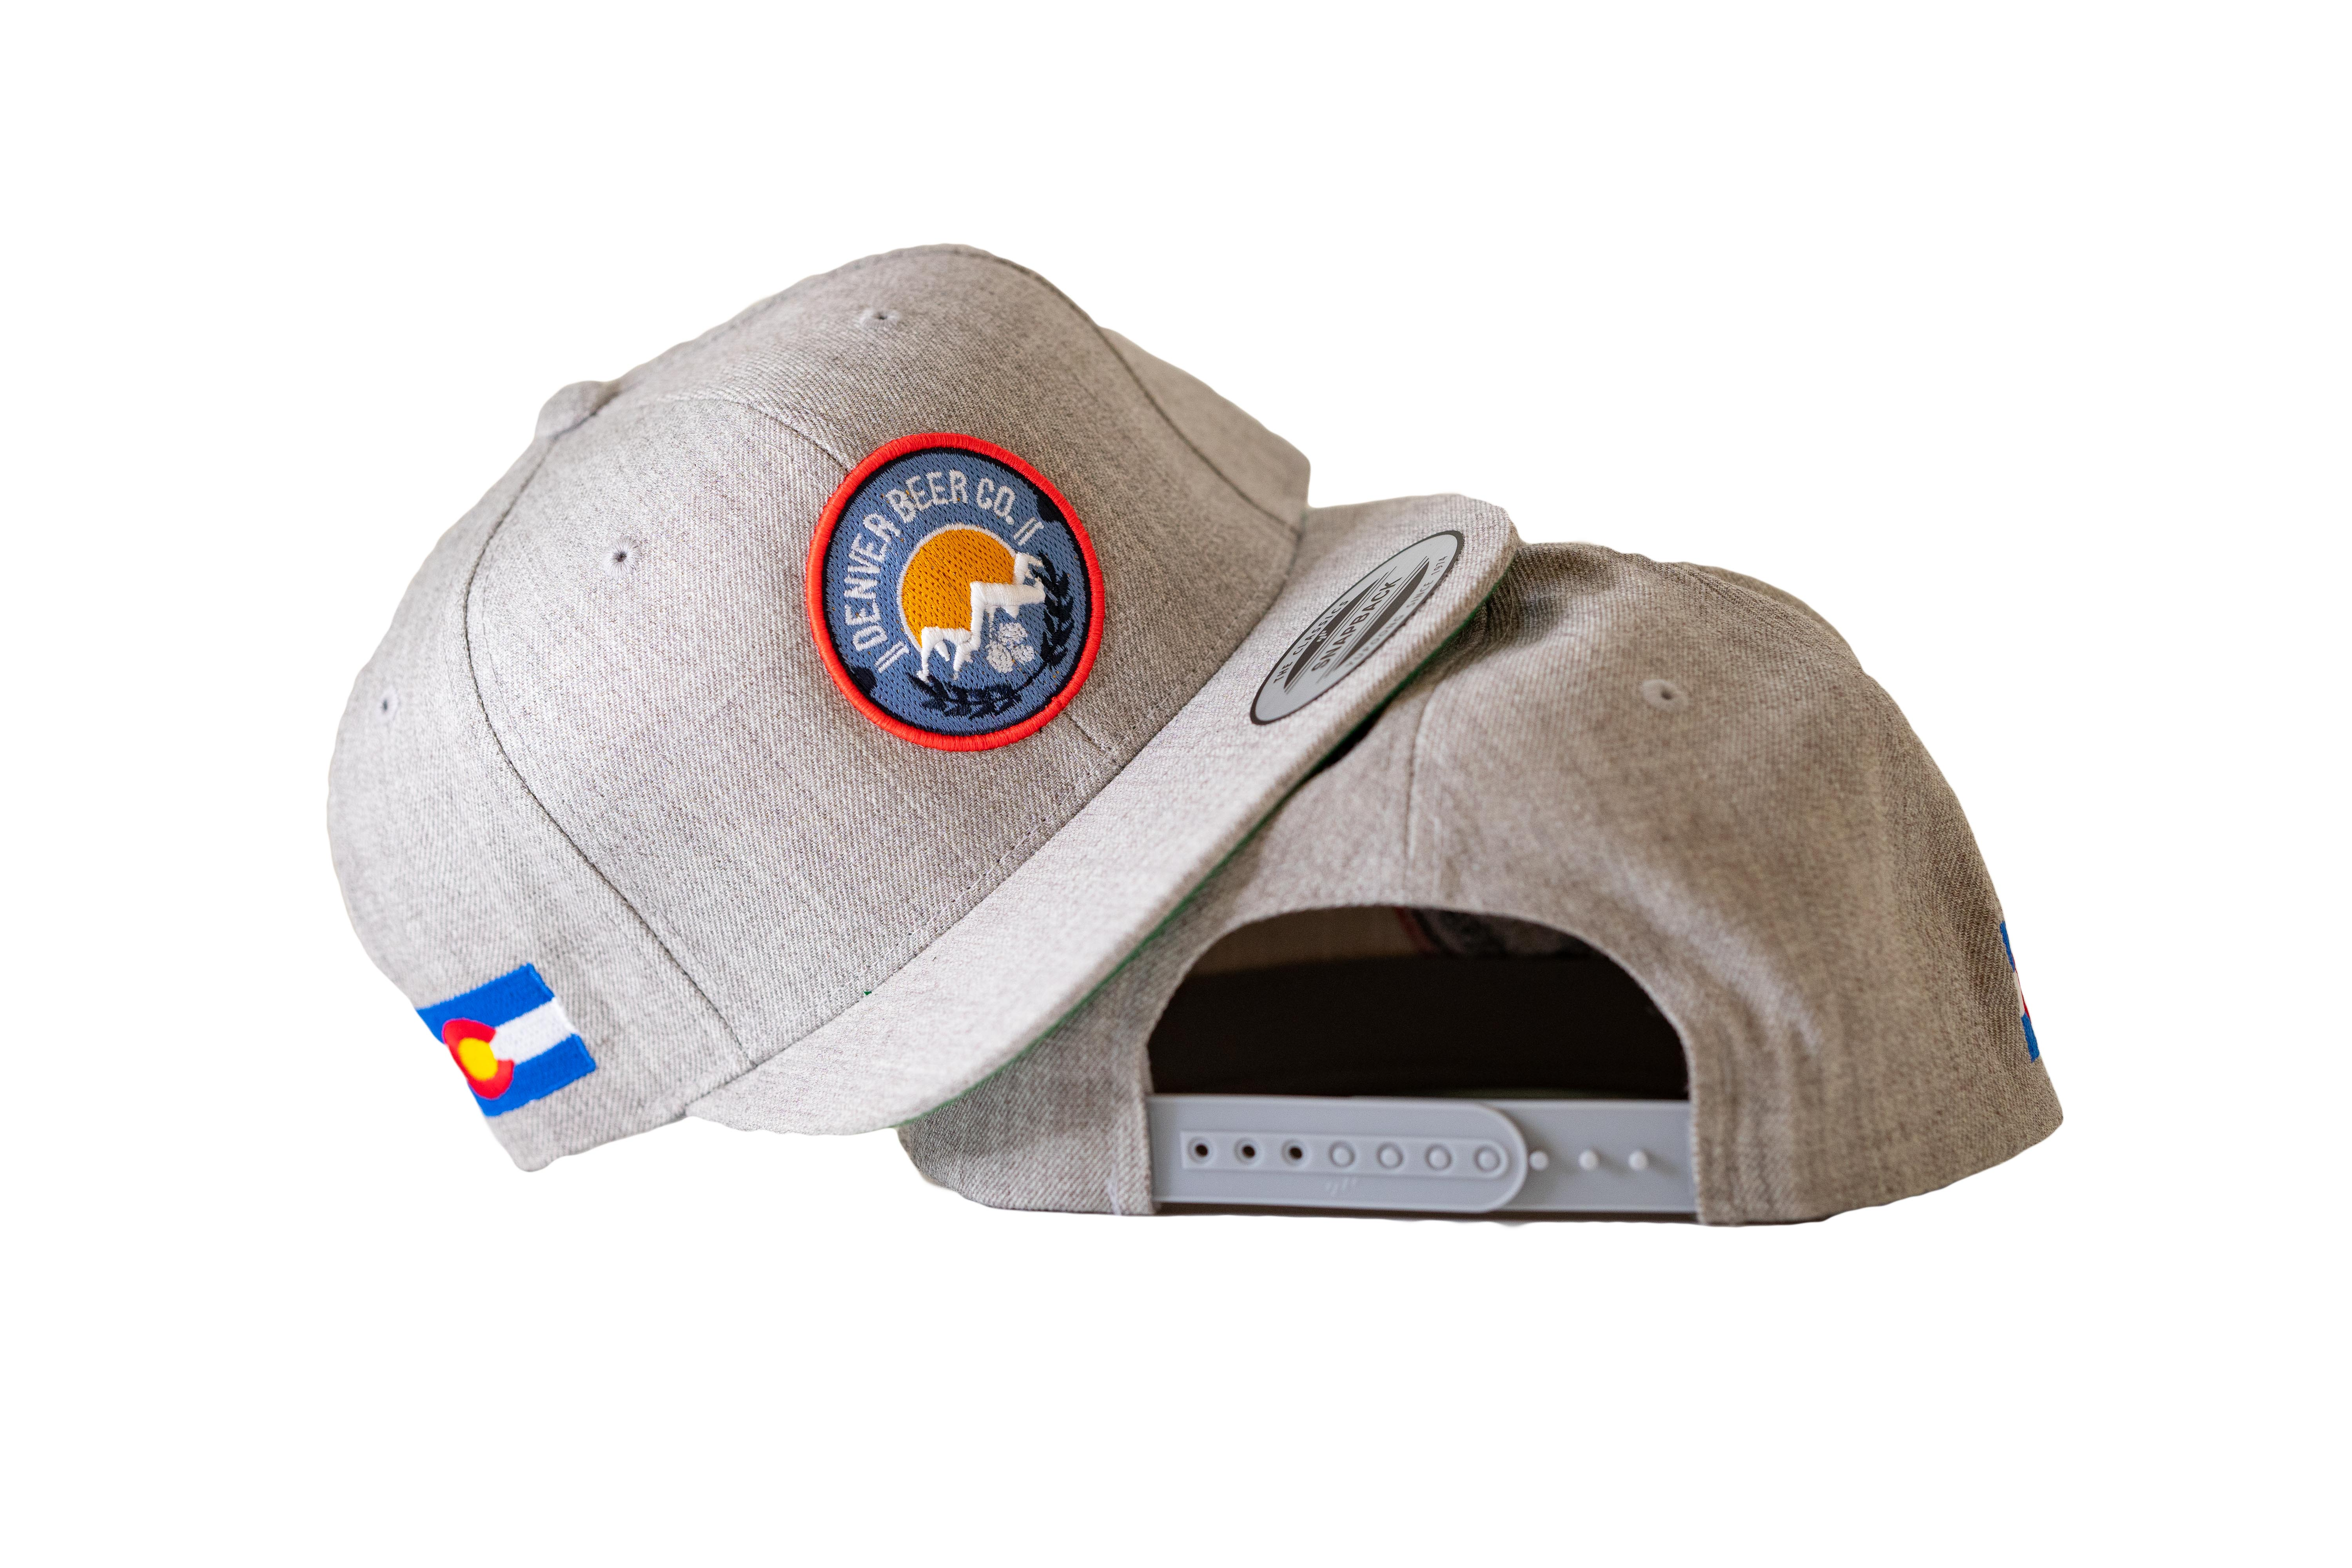 Denver Beer Co Flat Brim Hat, Snap Back, Gray Twill, with Raised Embroidery Twill Snap-back_SWATCH